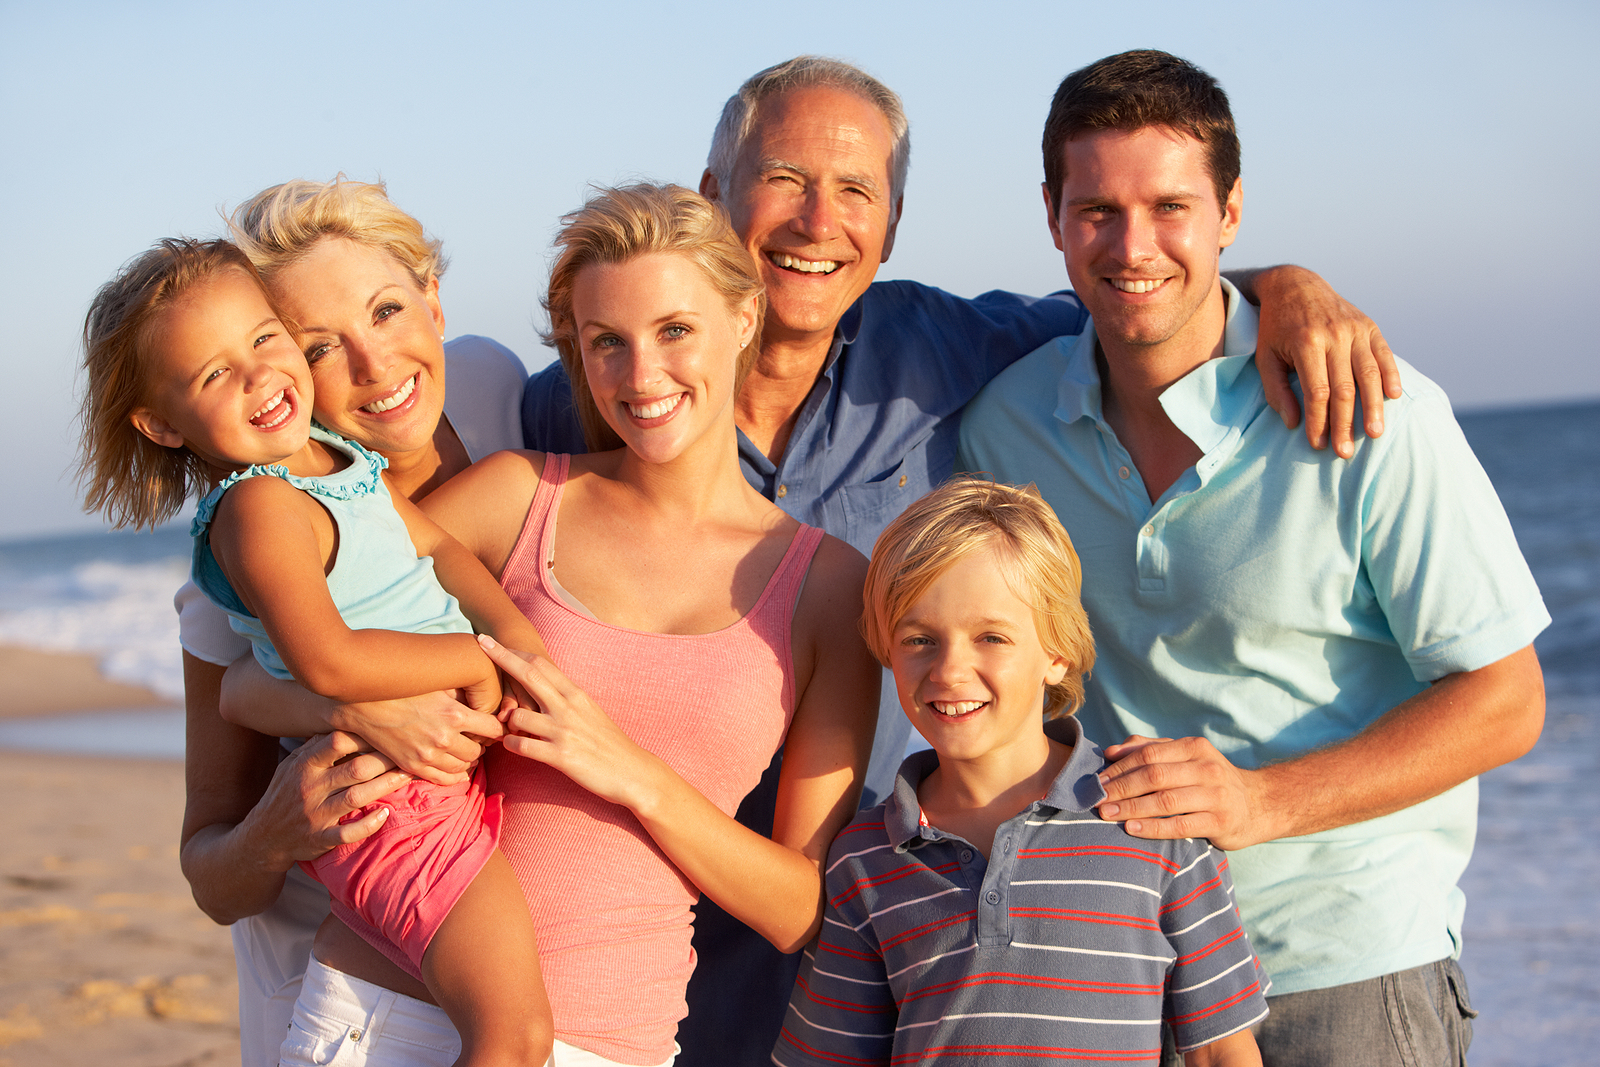 a happy family of parents, grandparents, and children are on the beach on vacation.